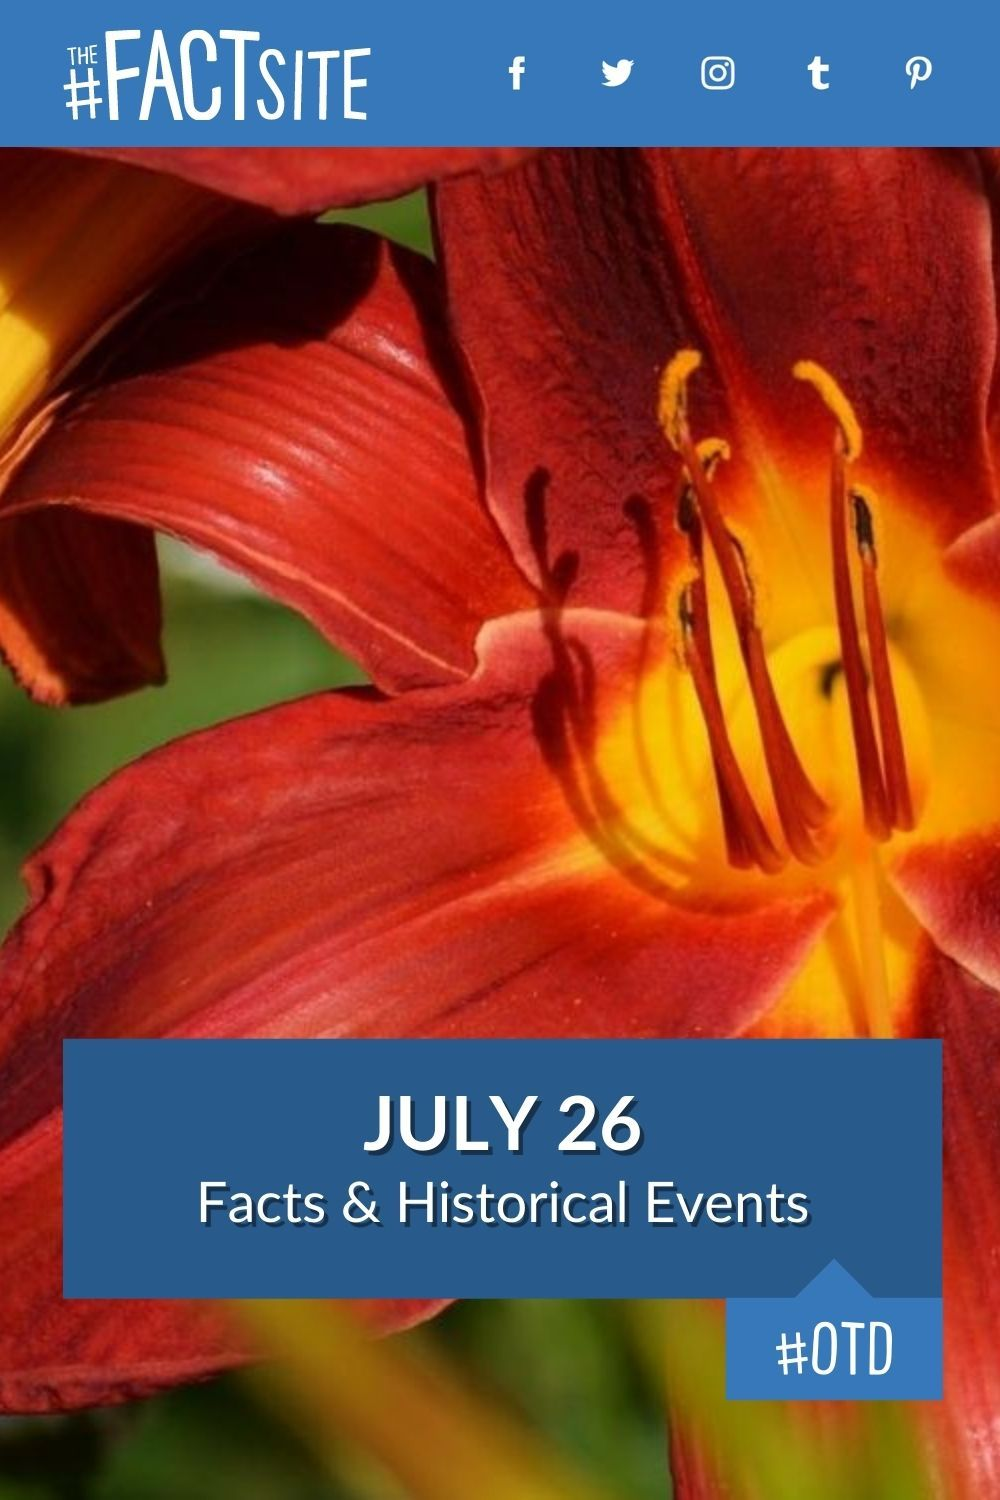 Facts & Historic Events That Happened on July 26